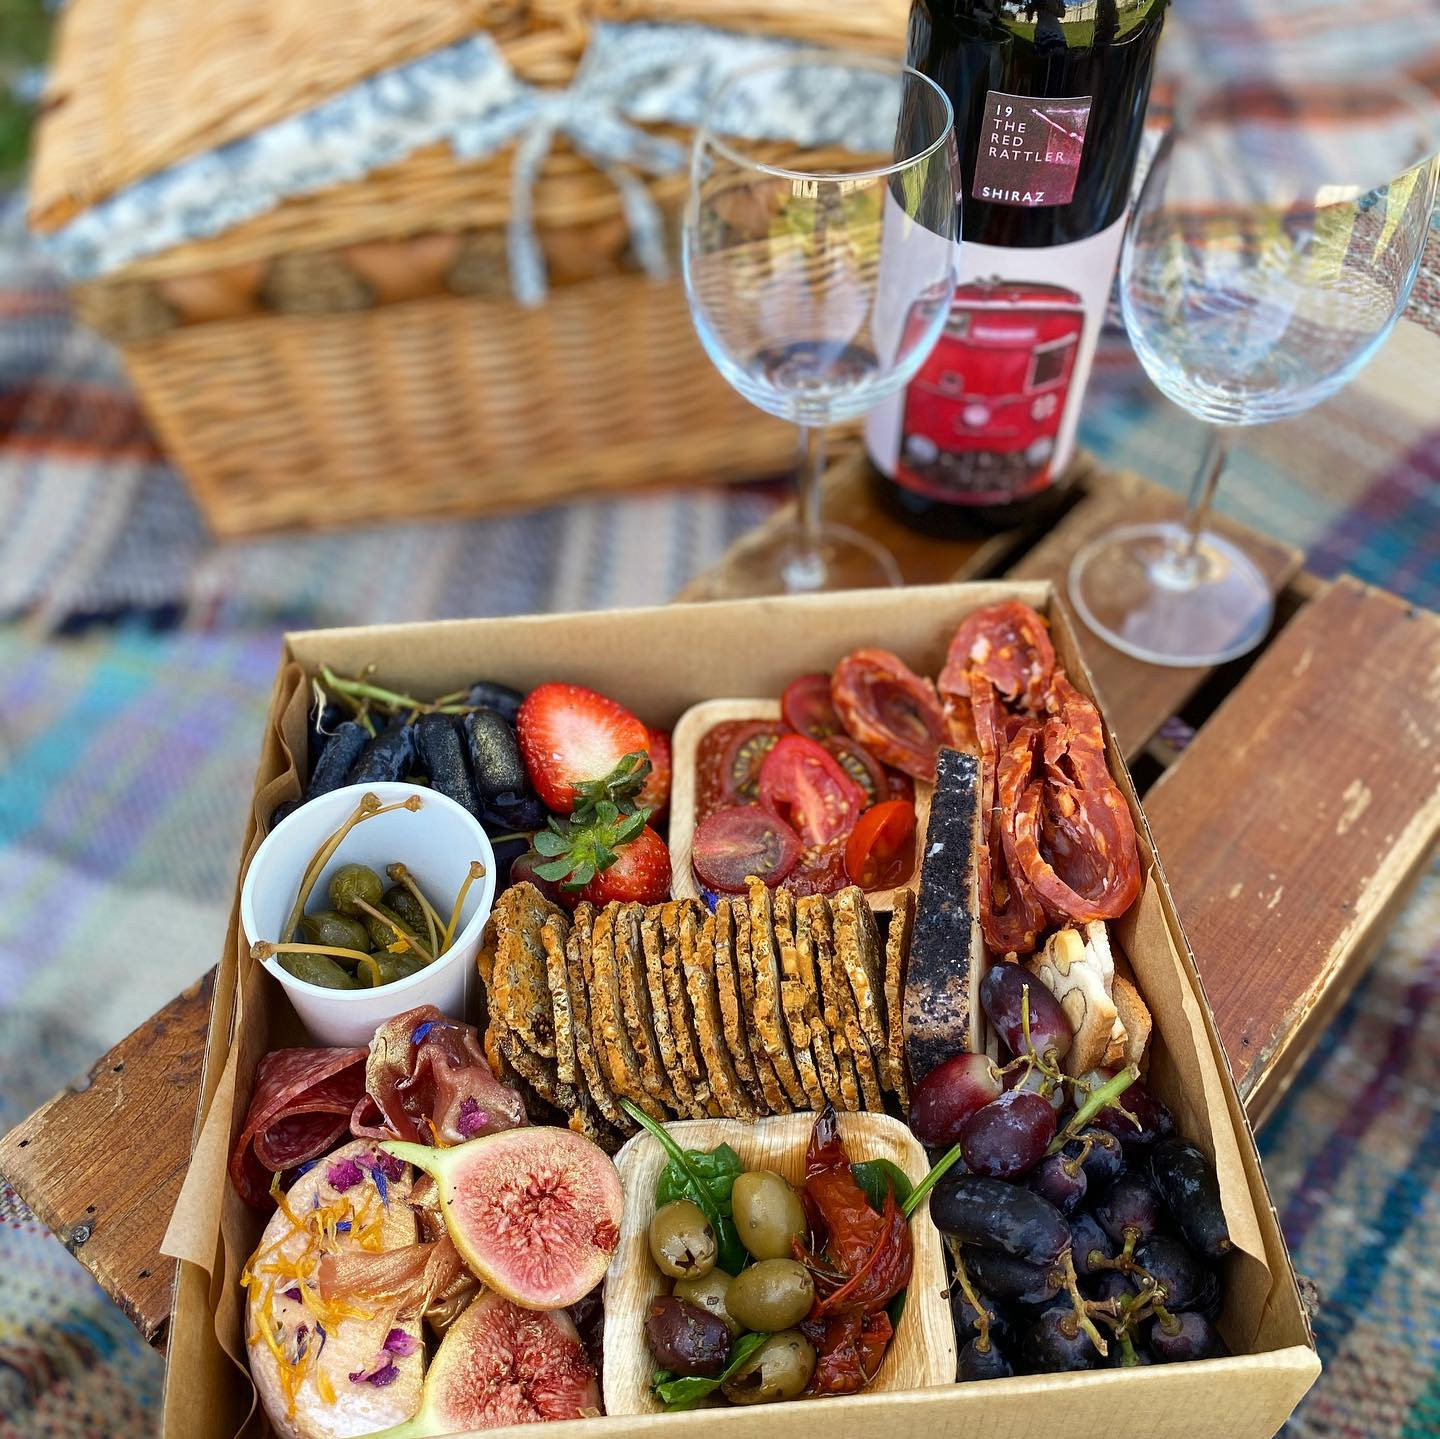 Sweetheart Picnic for two